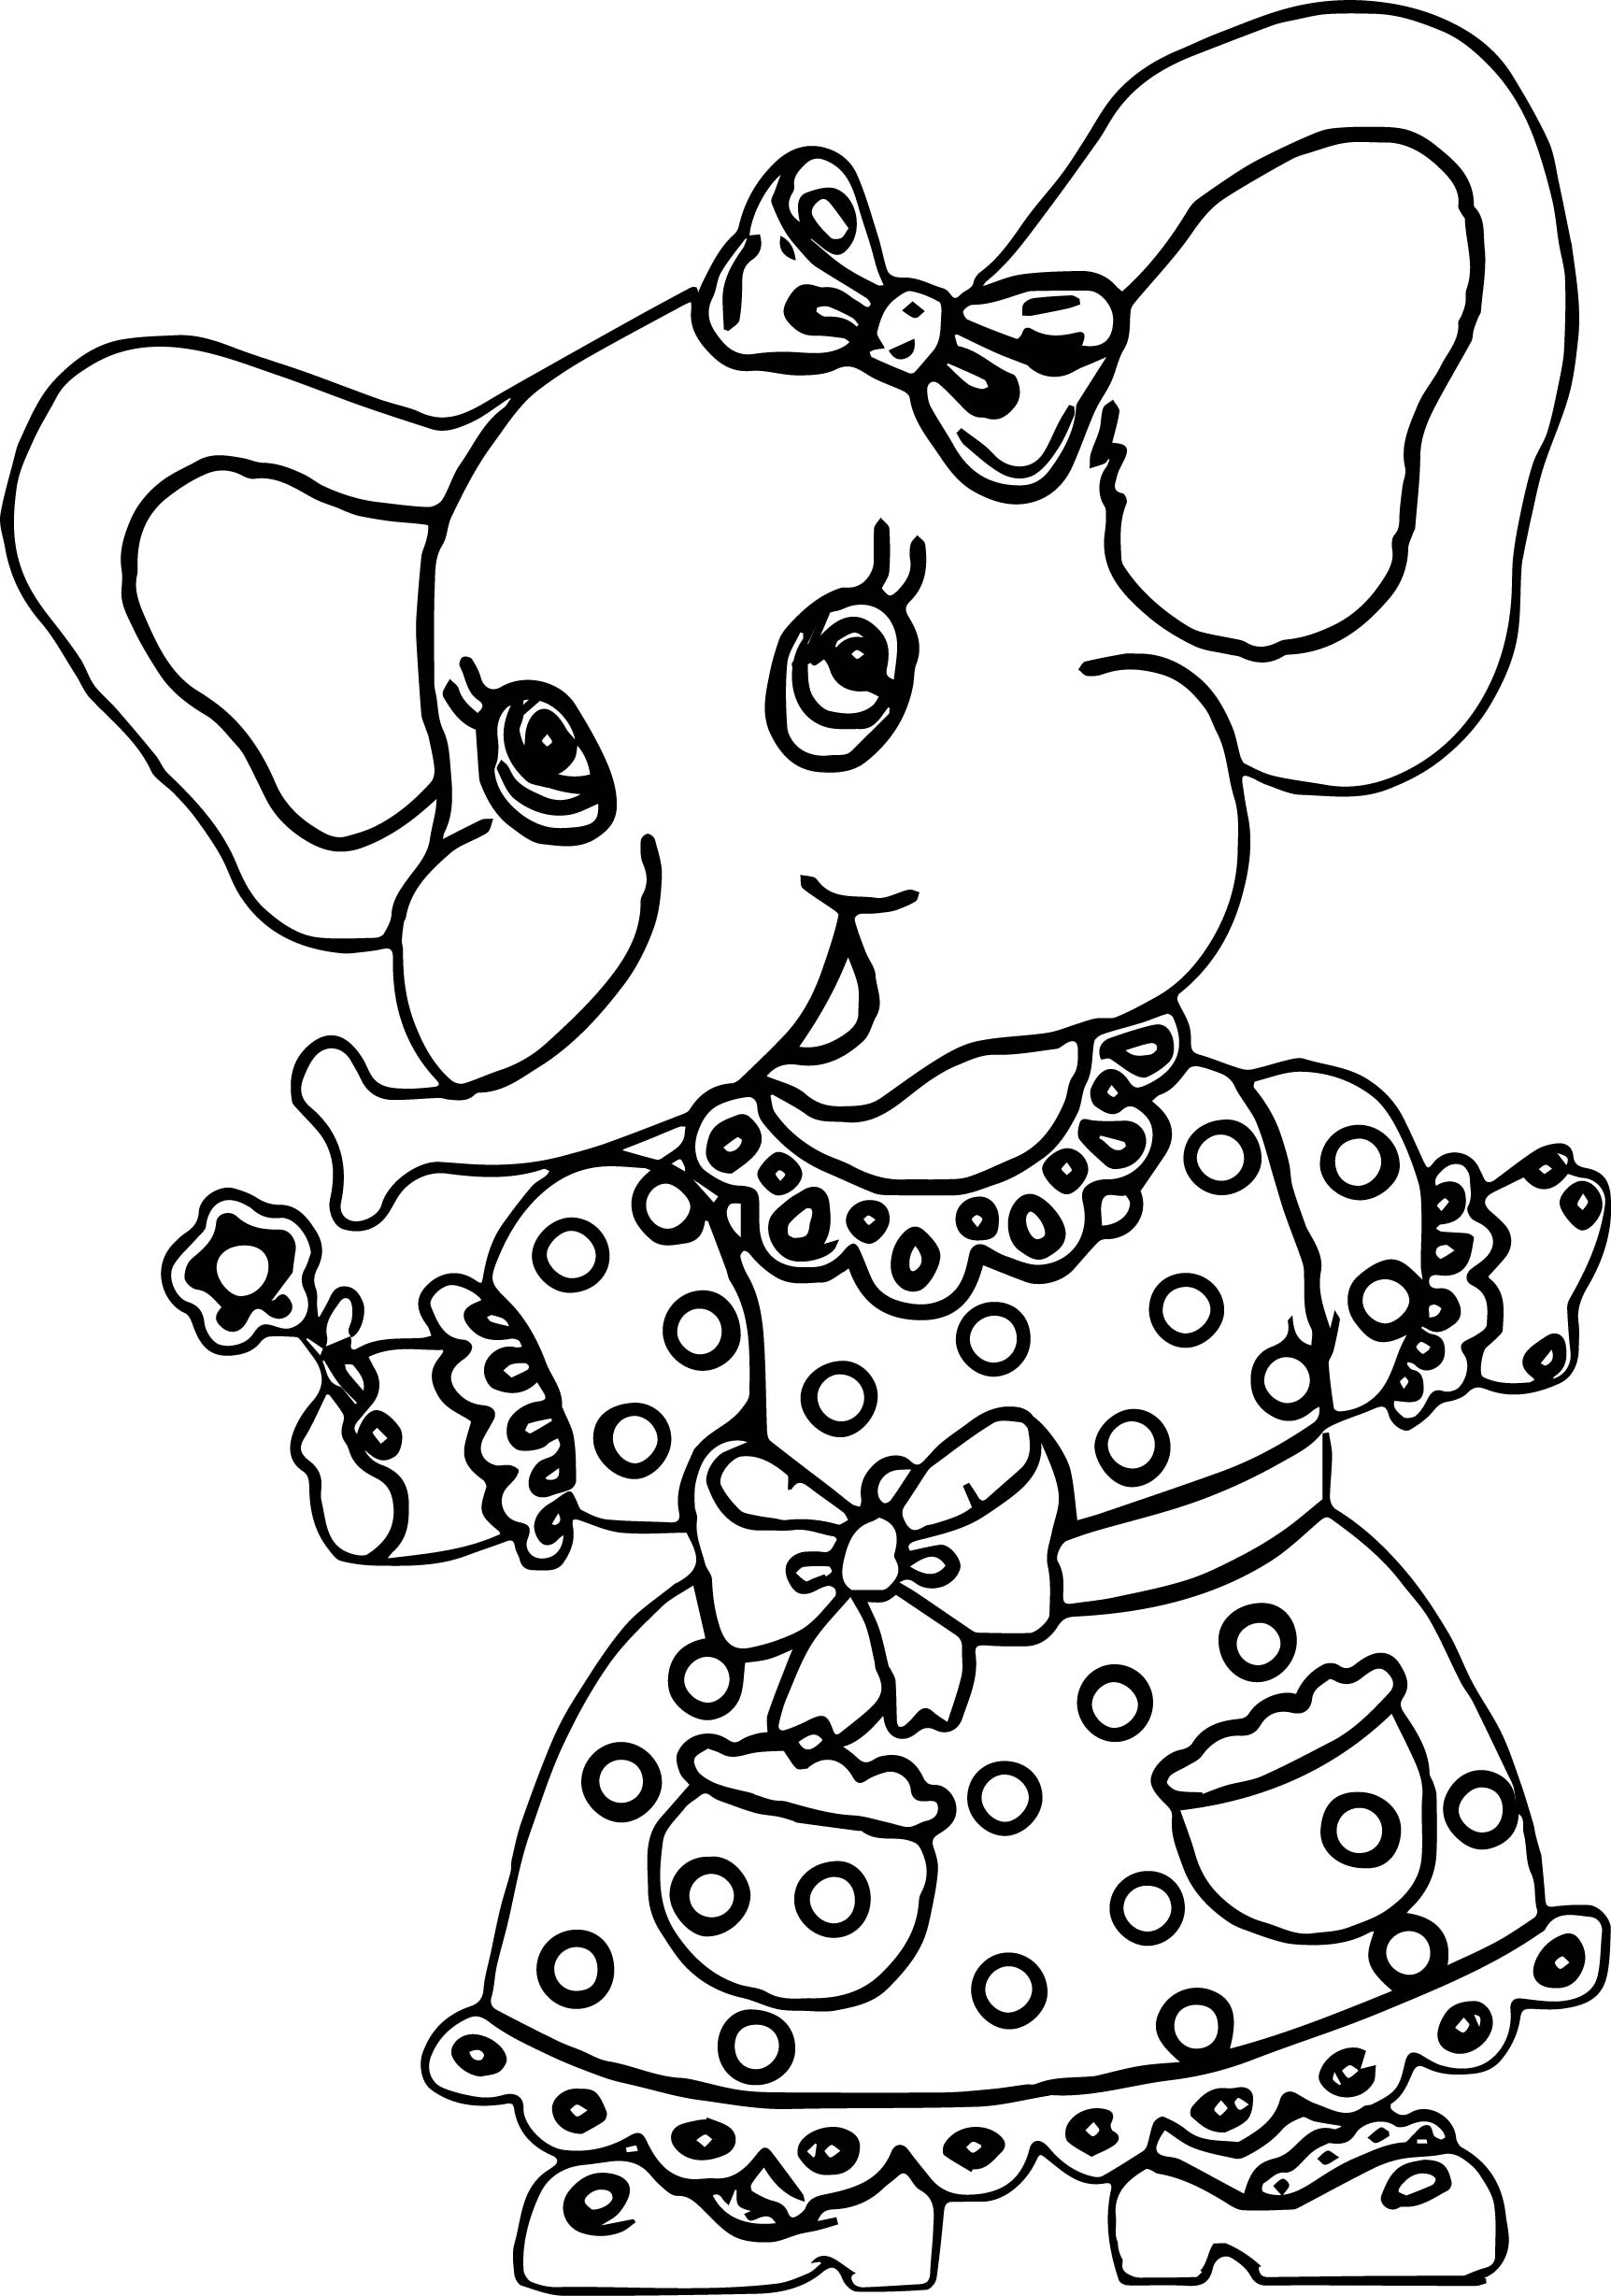 Elephant Girl Dress Coloring Page | Wecoloringpage